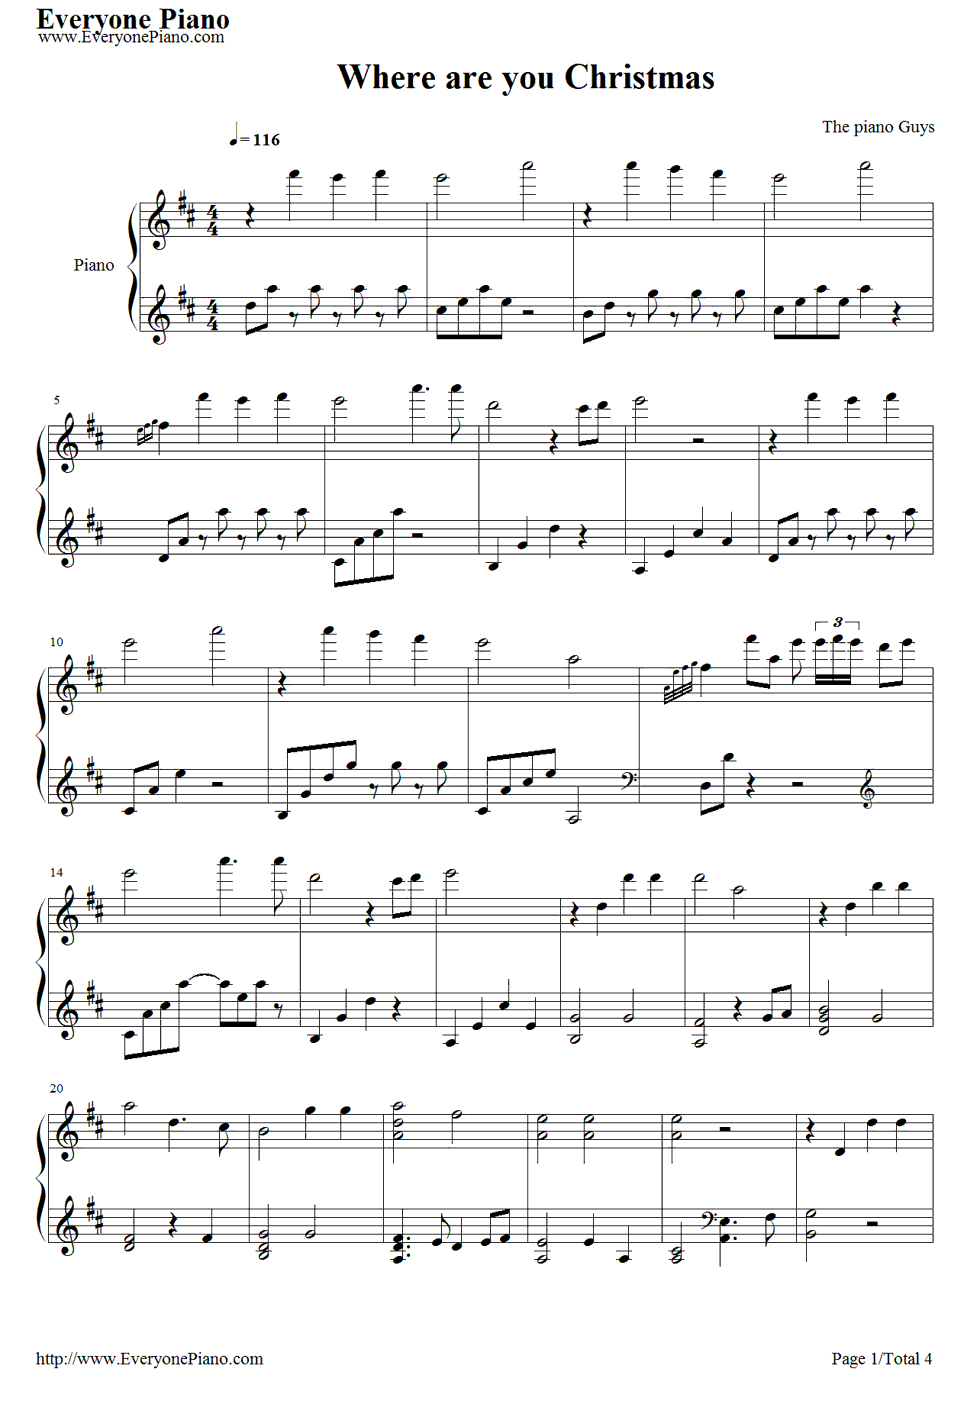 Free Where Are You Christmas-The Piano Guys Sheet Music Preview 1 - Christmas Music For Piano Free Printable